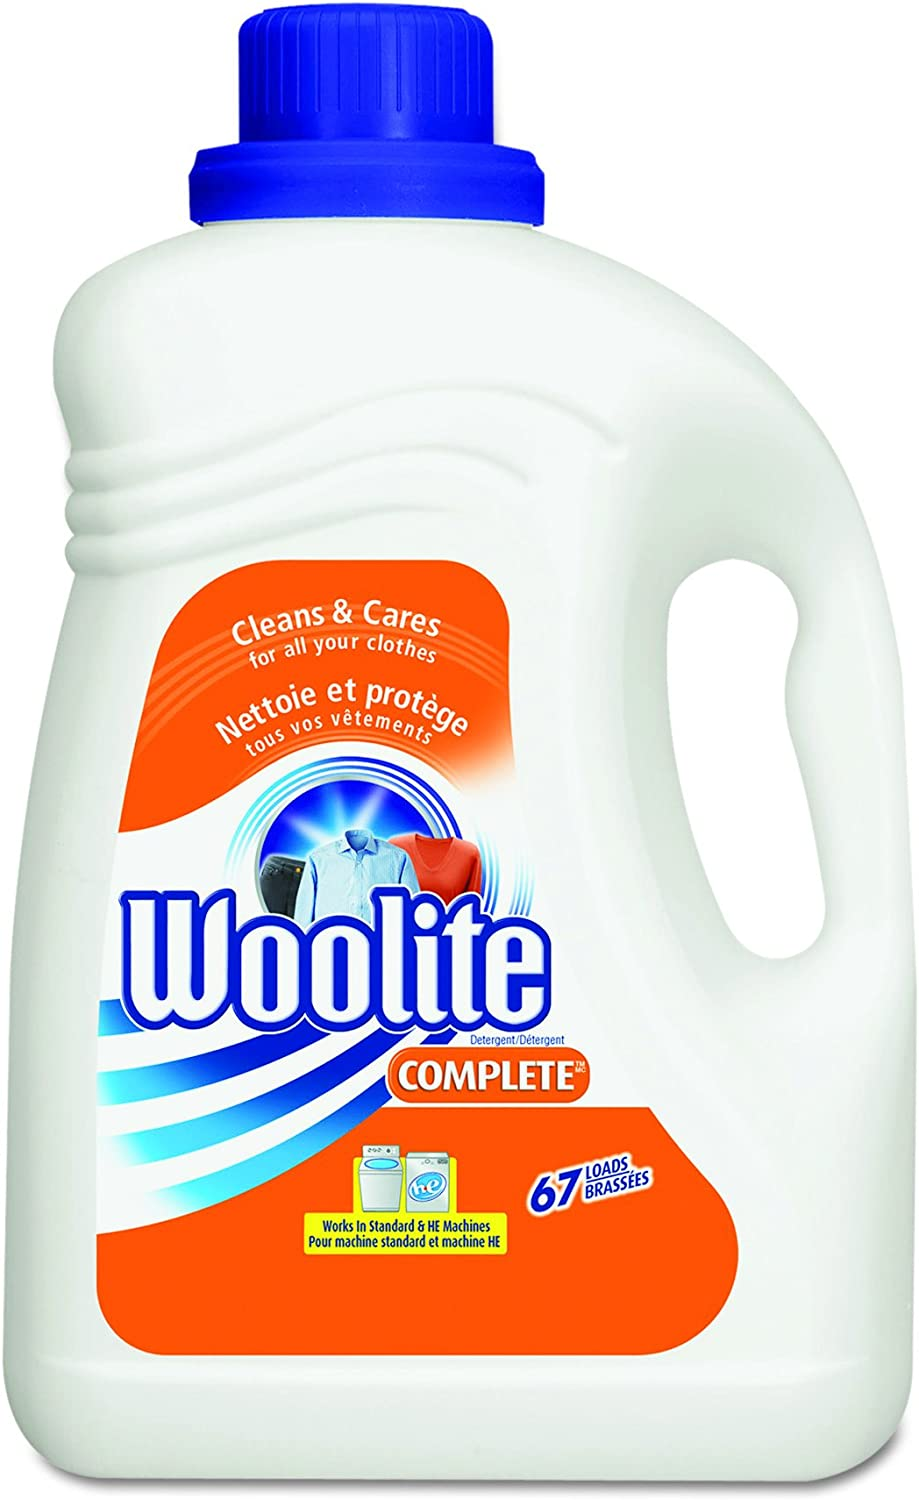 Woolite Fabric Wash for All Fabrics, 133 Ounce